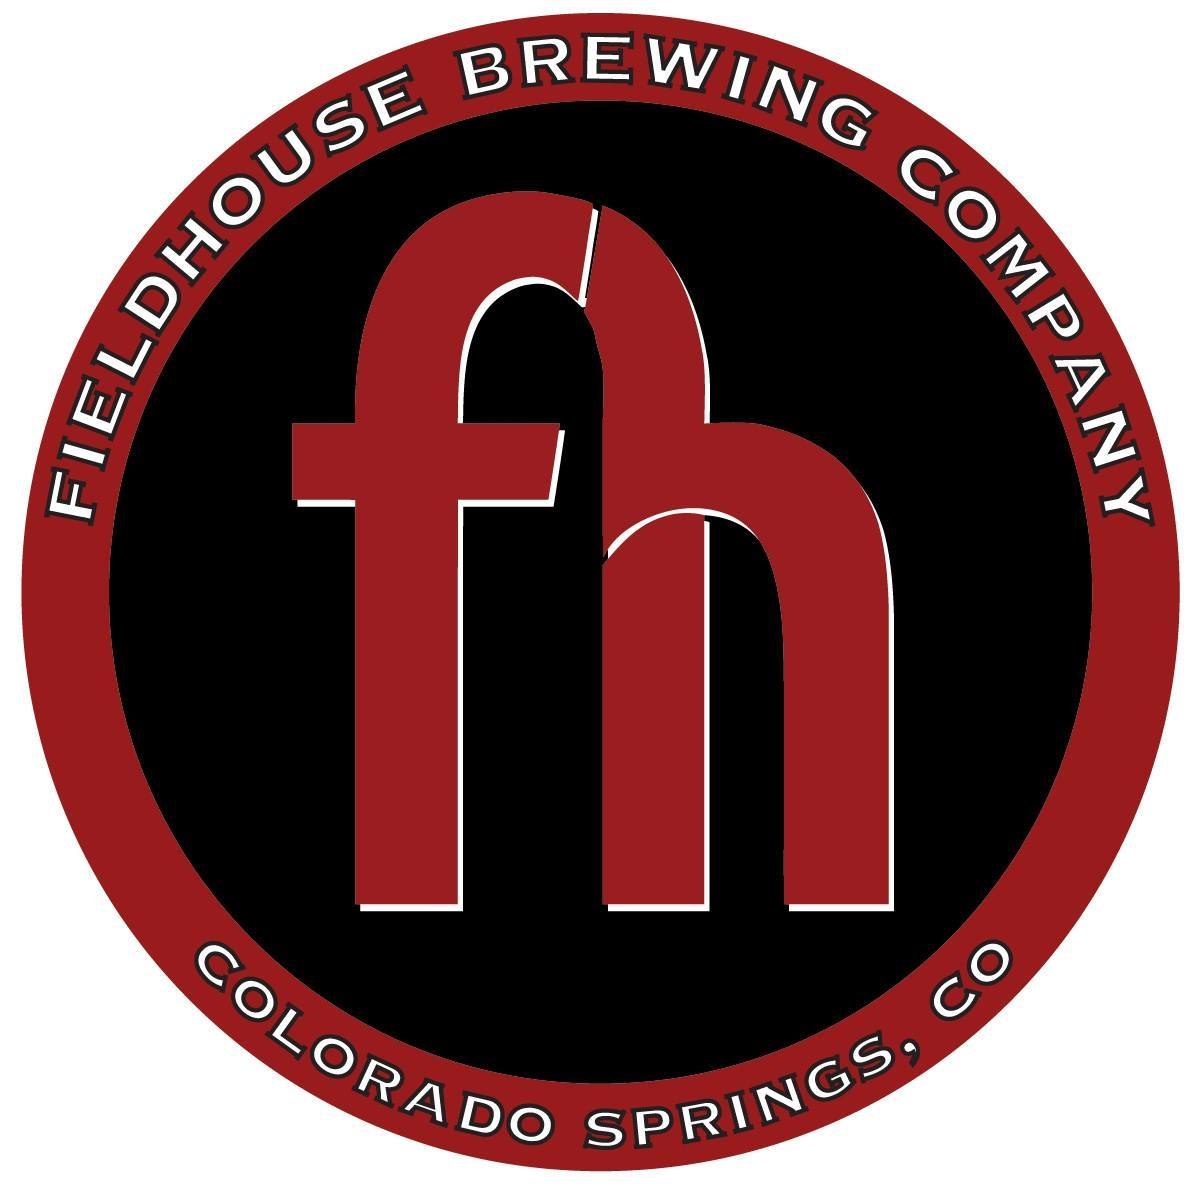 Image result for Field House brewery colorado springs